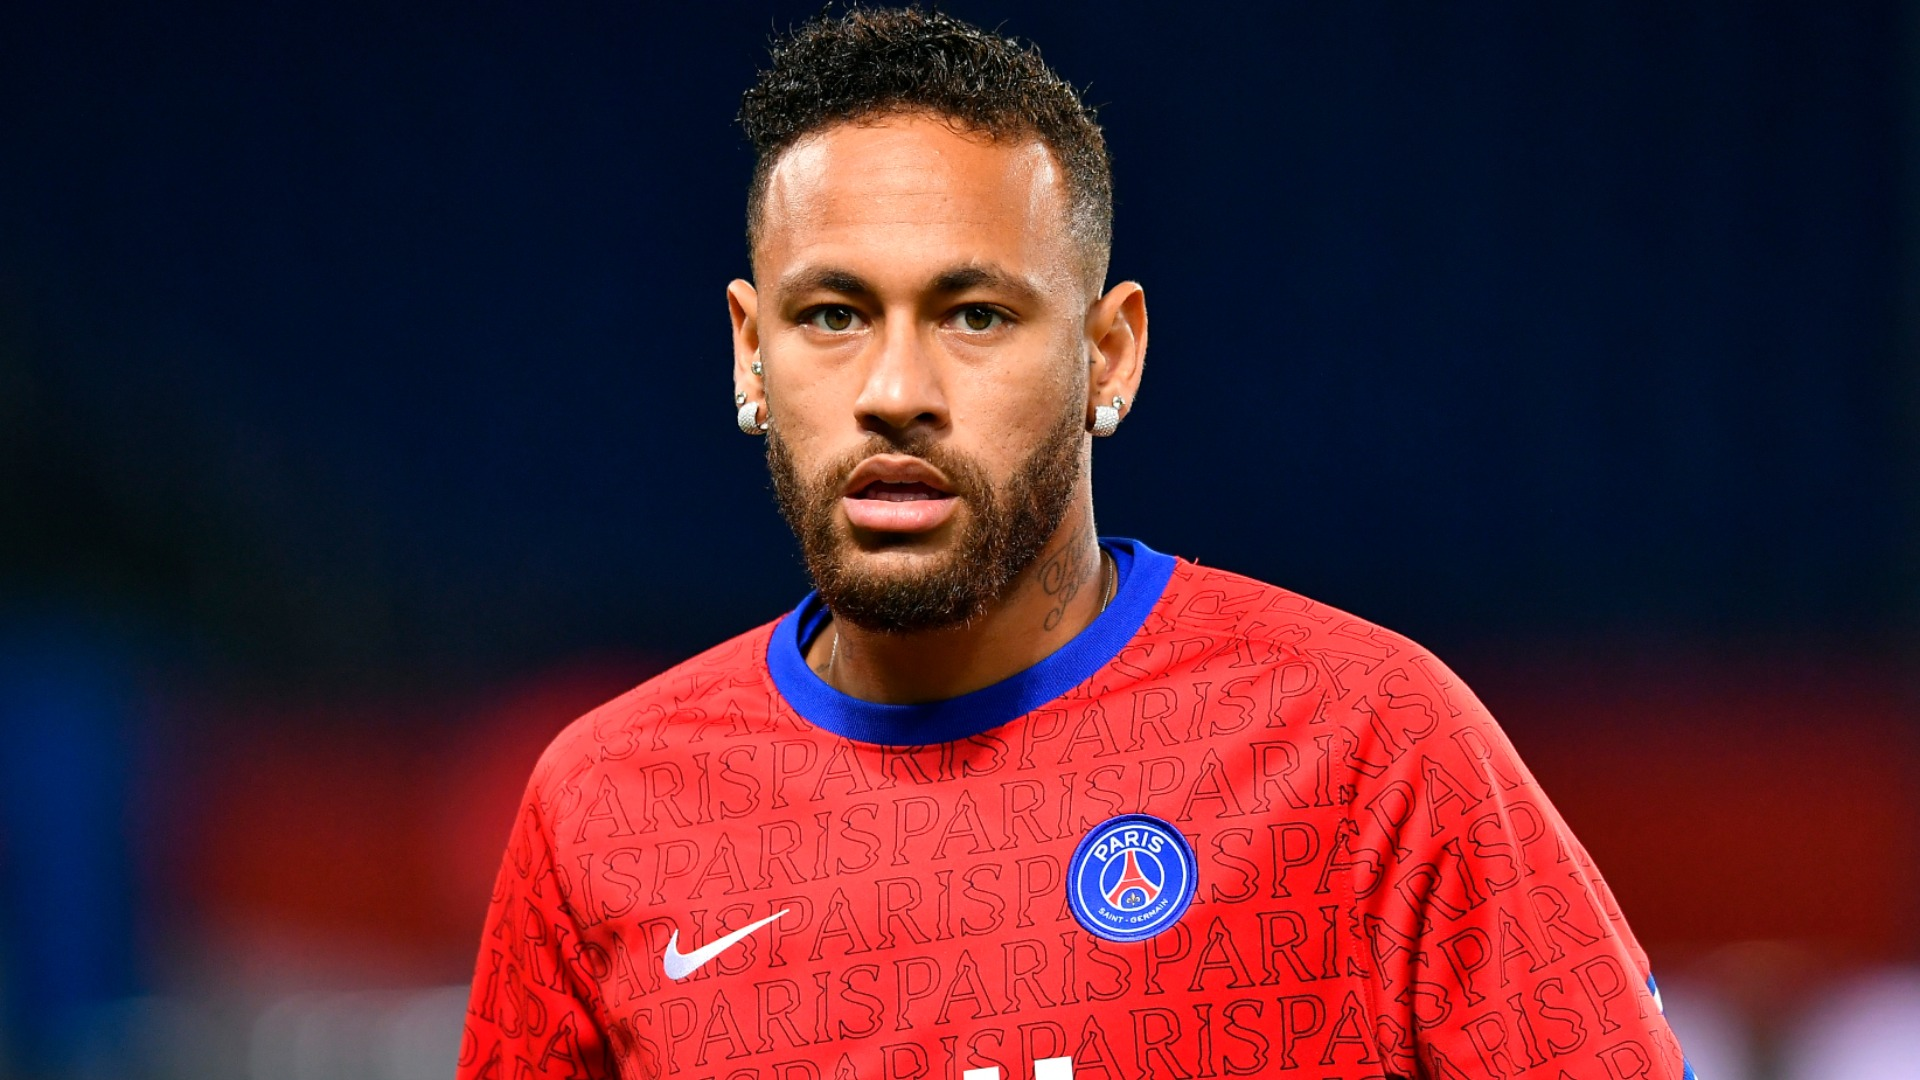 Neymar left out of PSG squad for Nimes match